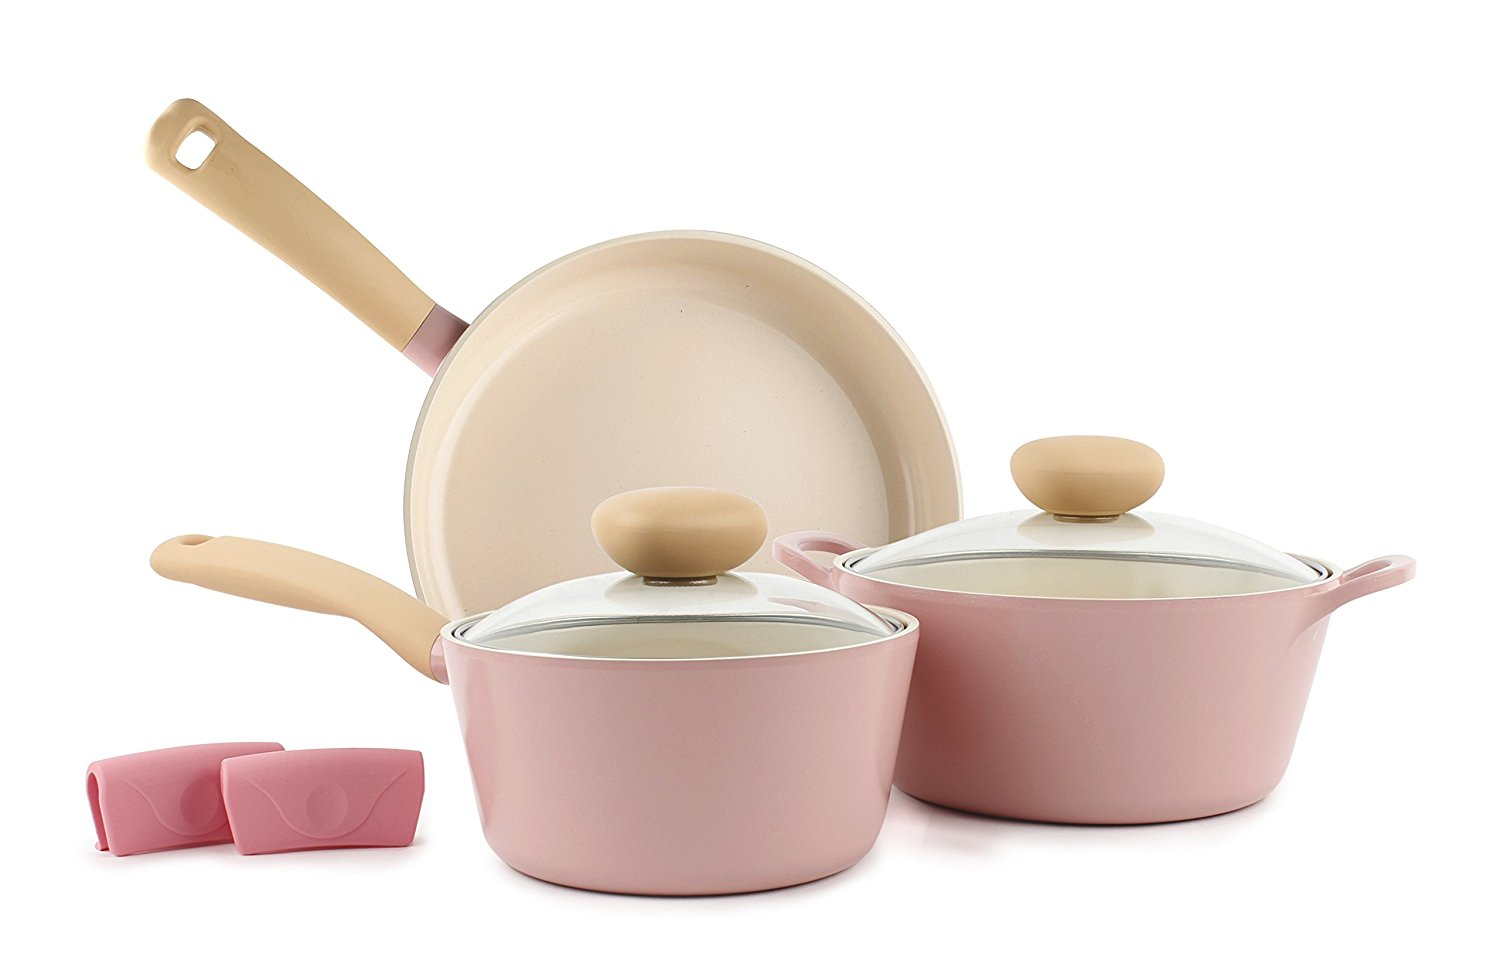 Retro 5-Piece Ceramic Non-Stick Cookware Set, Pink (How cute is this?!)